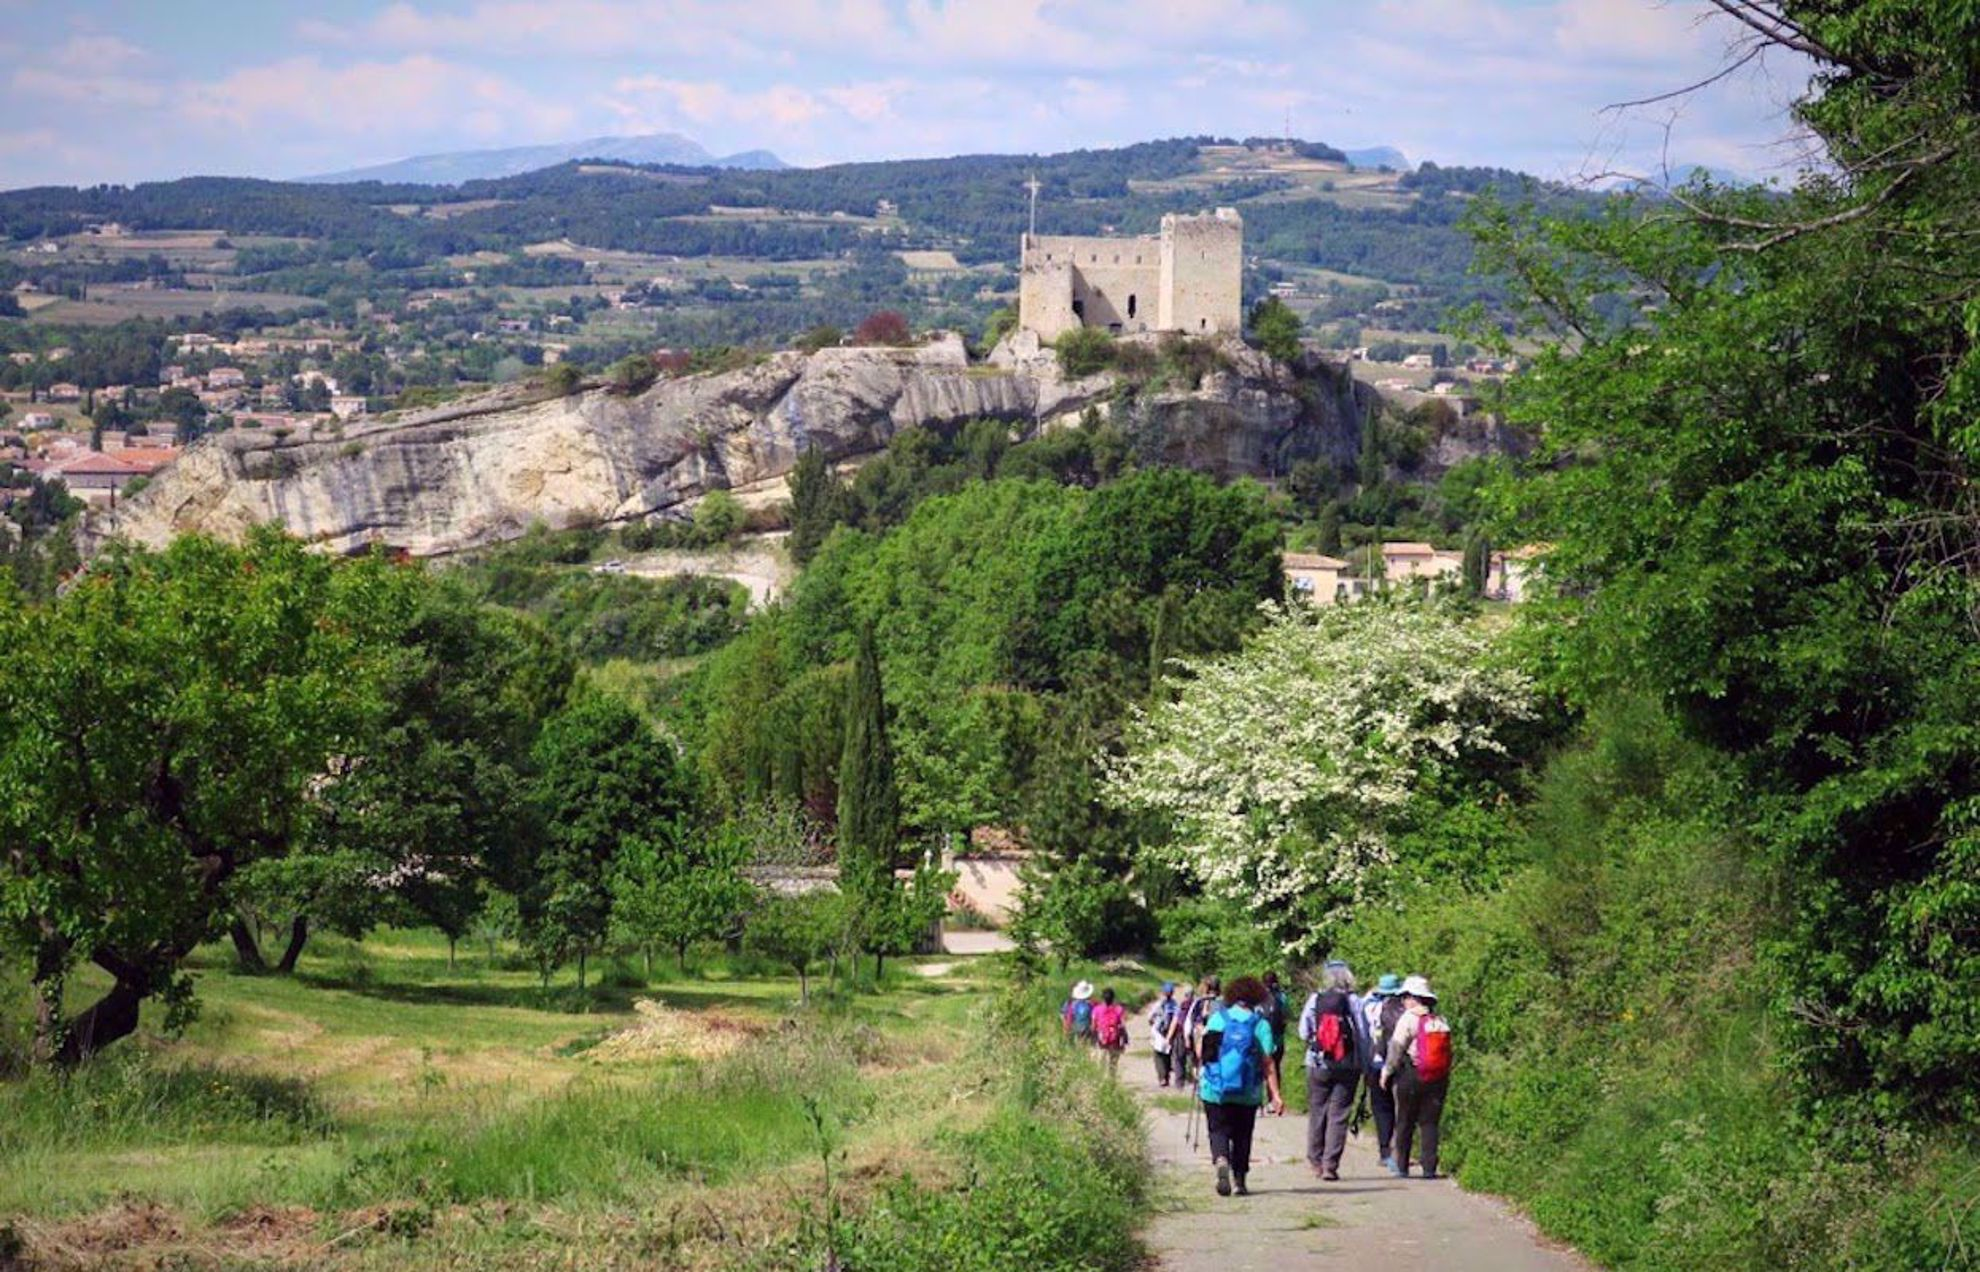 walking into Vaison de Romaine on a women's hiking trip in Provence